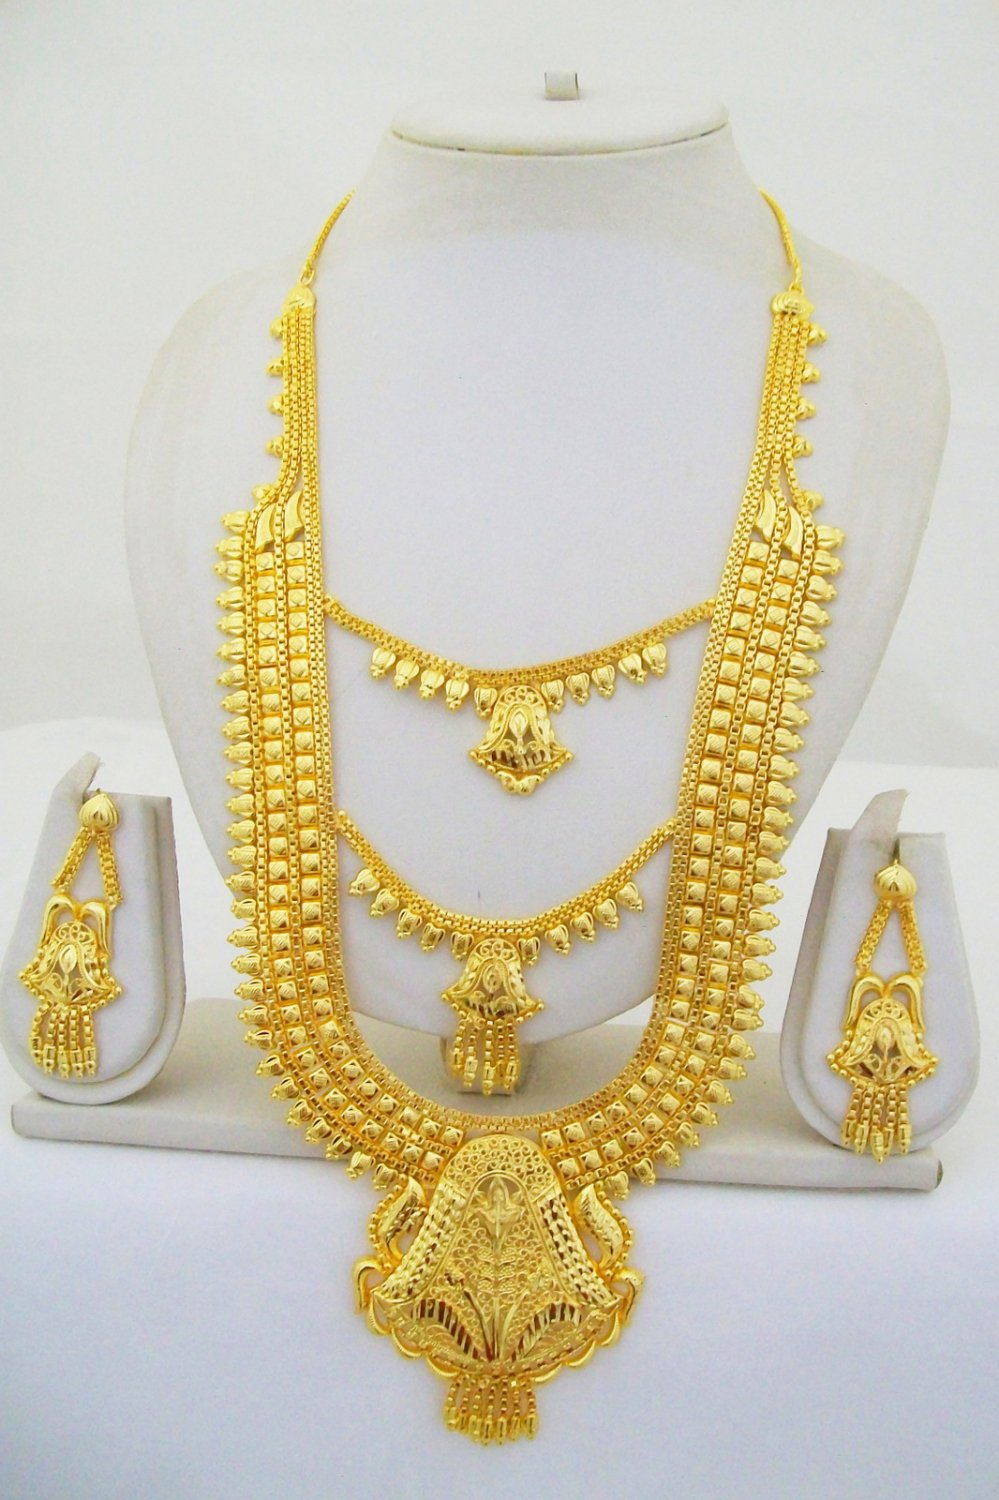 Layered Gold Plated Rani Haar Necklace Tikka Bridal Long Asian East Indian Jewelry Set